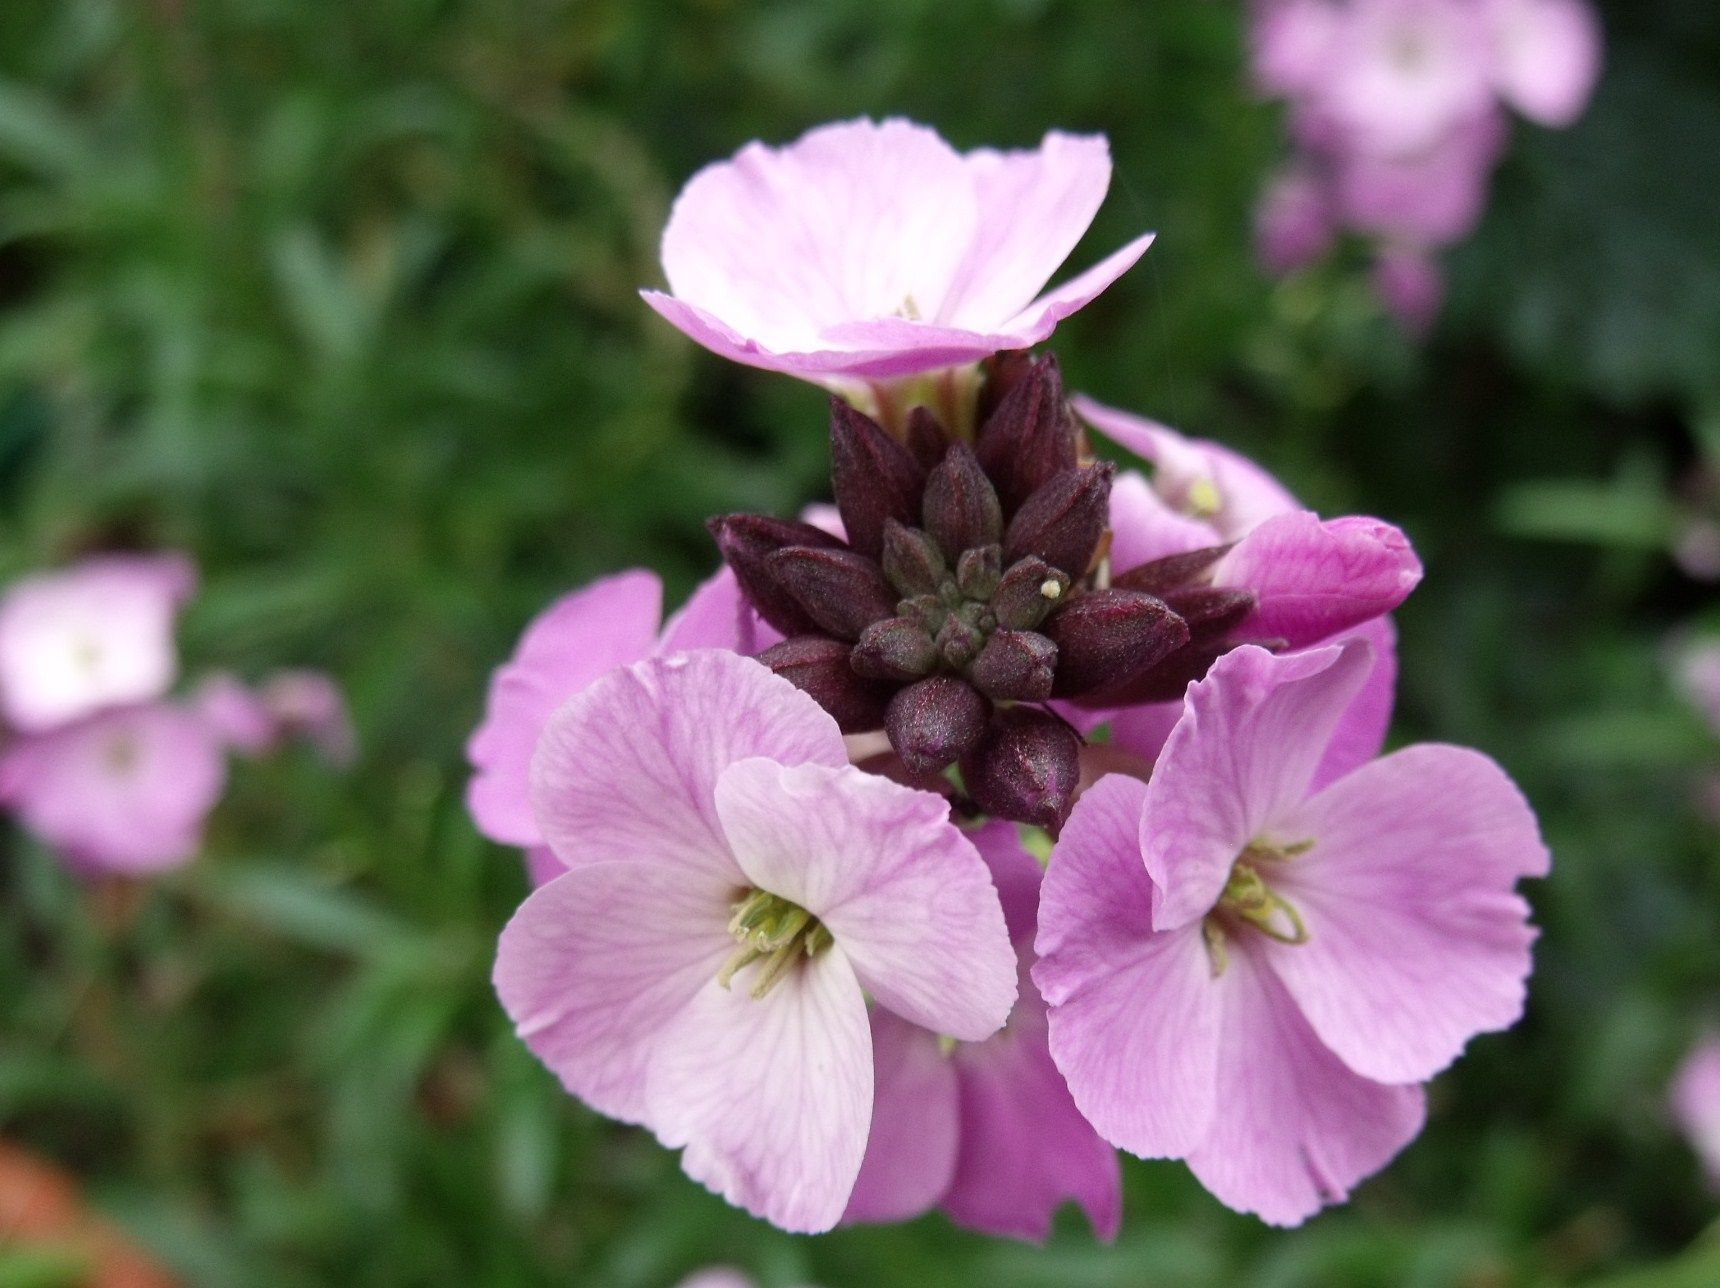 Wallflower Erysimum Lilac Joy In The Vege Garden To Bring In The Bees Flowers Through Winter Spring And A Lovely Fragrance Flowers Garden Winter Springs